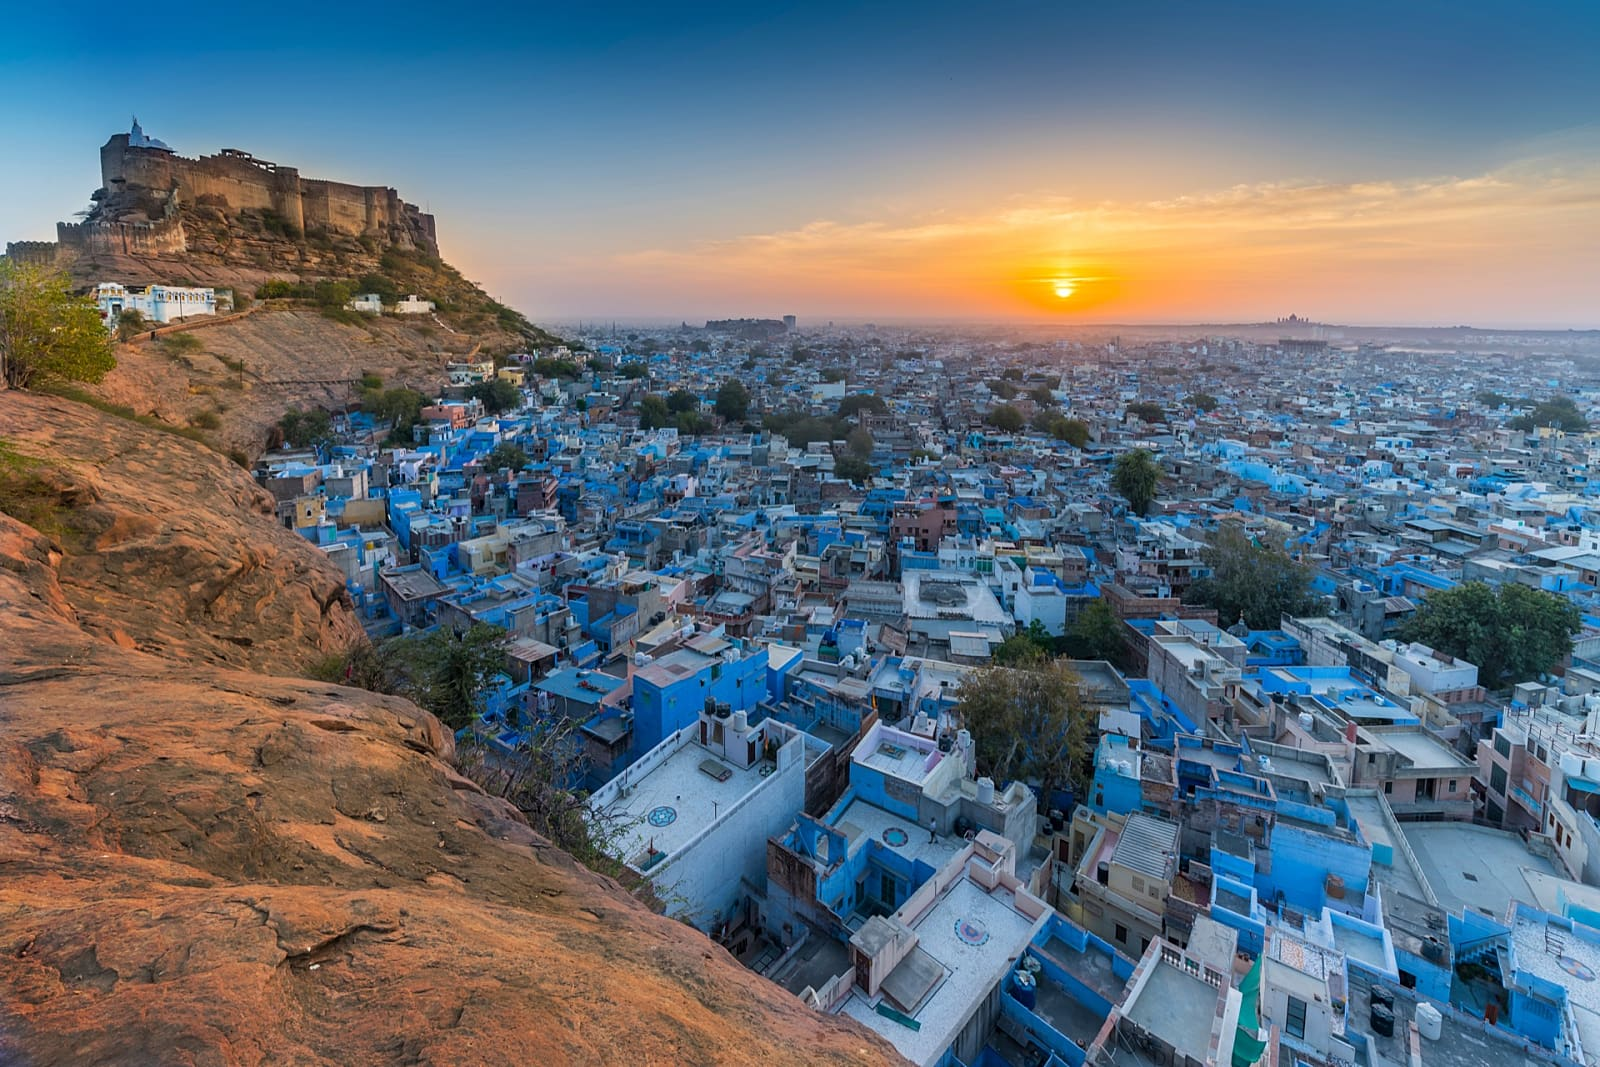 Private Transfer from Udaipur to Jodhpur with Kumbhalgarh and Ranakpur